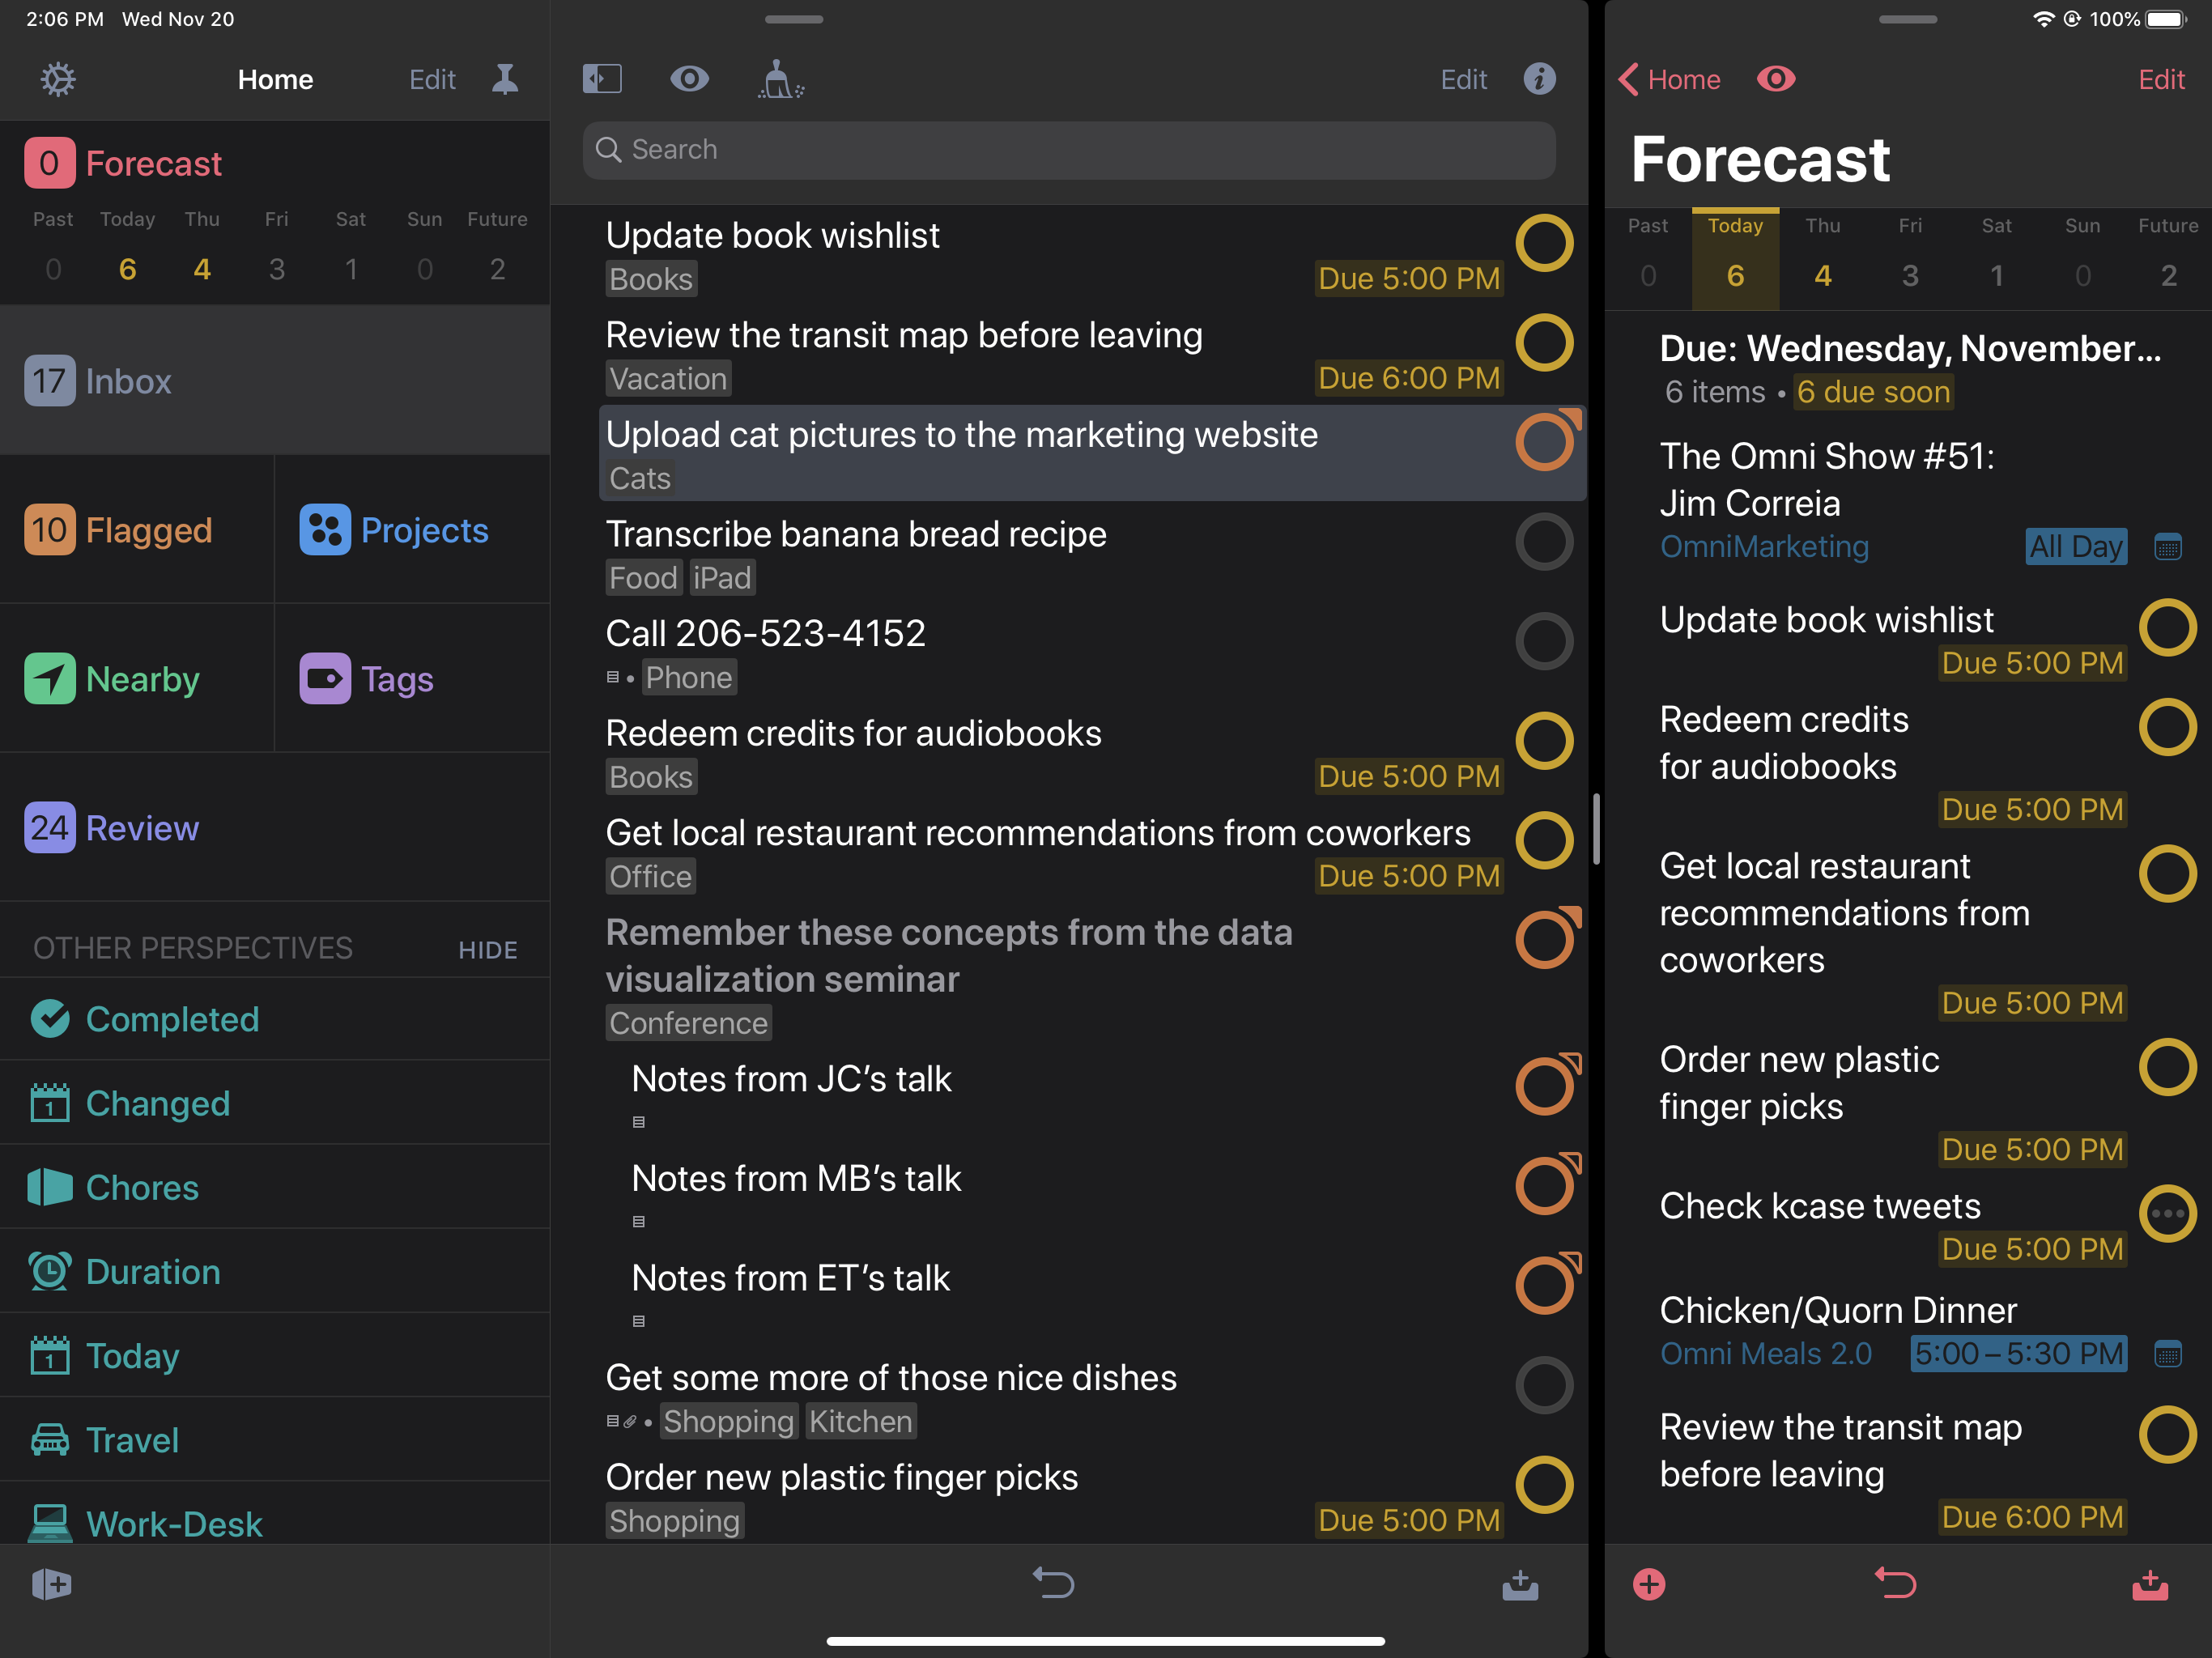 Screenshot showing OmniFocus running on an iPad, in Dark Mode, with one window showing Inbox and a second window showing Forecast.